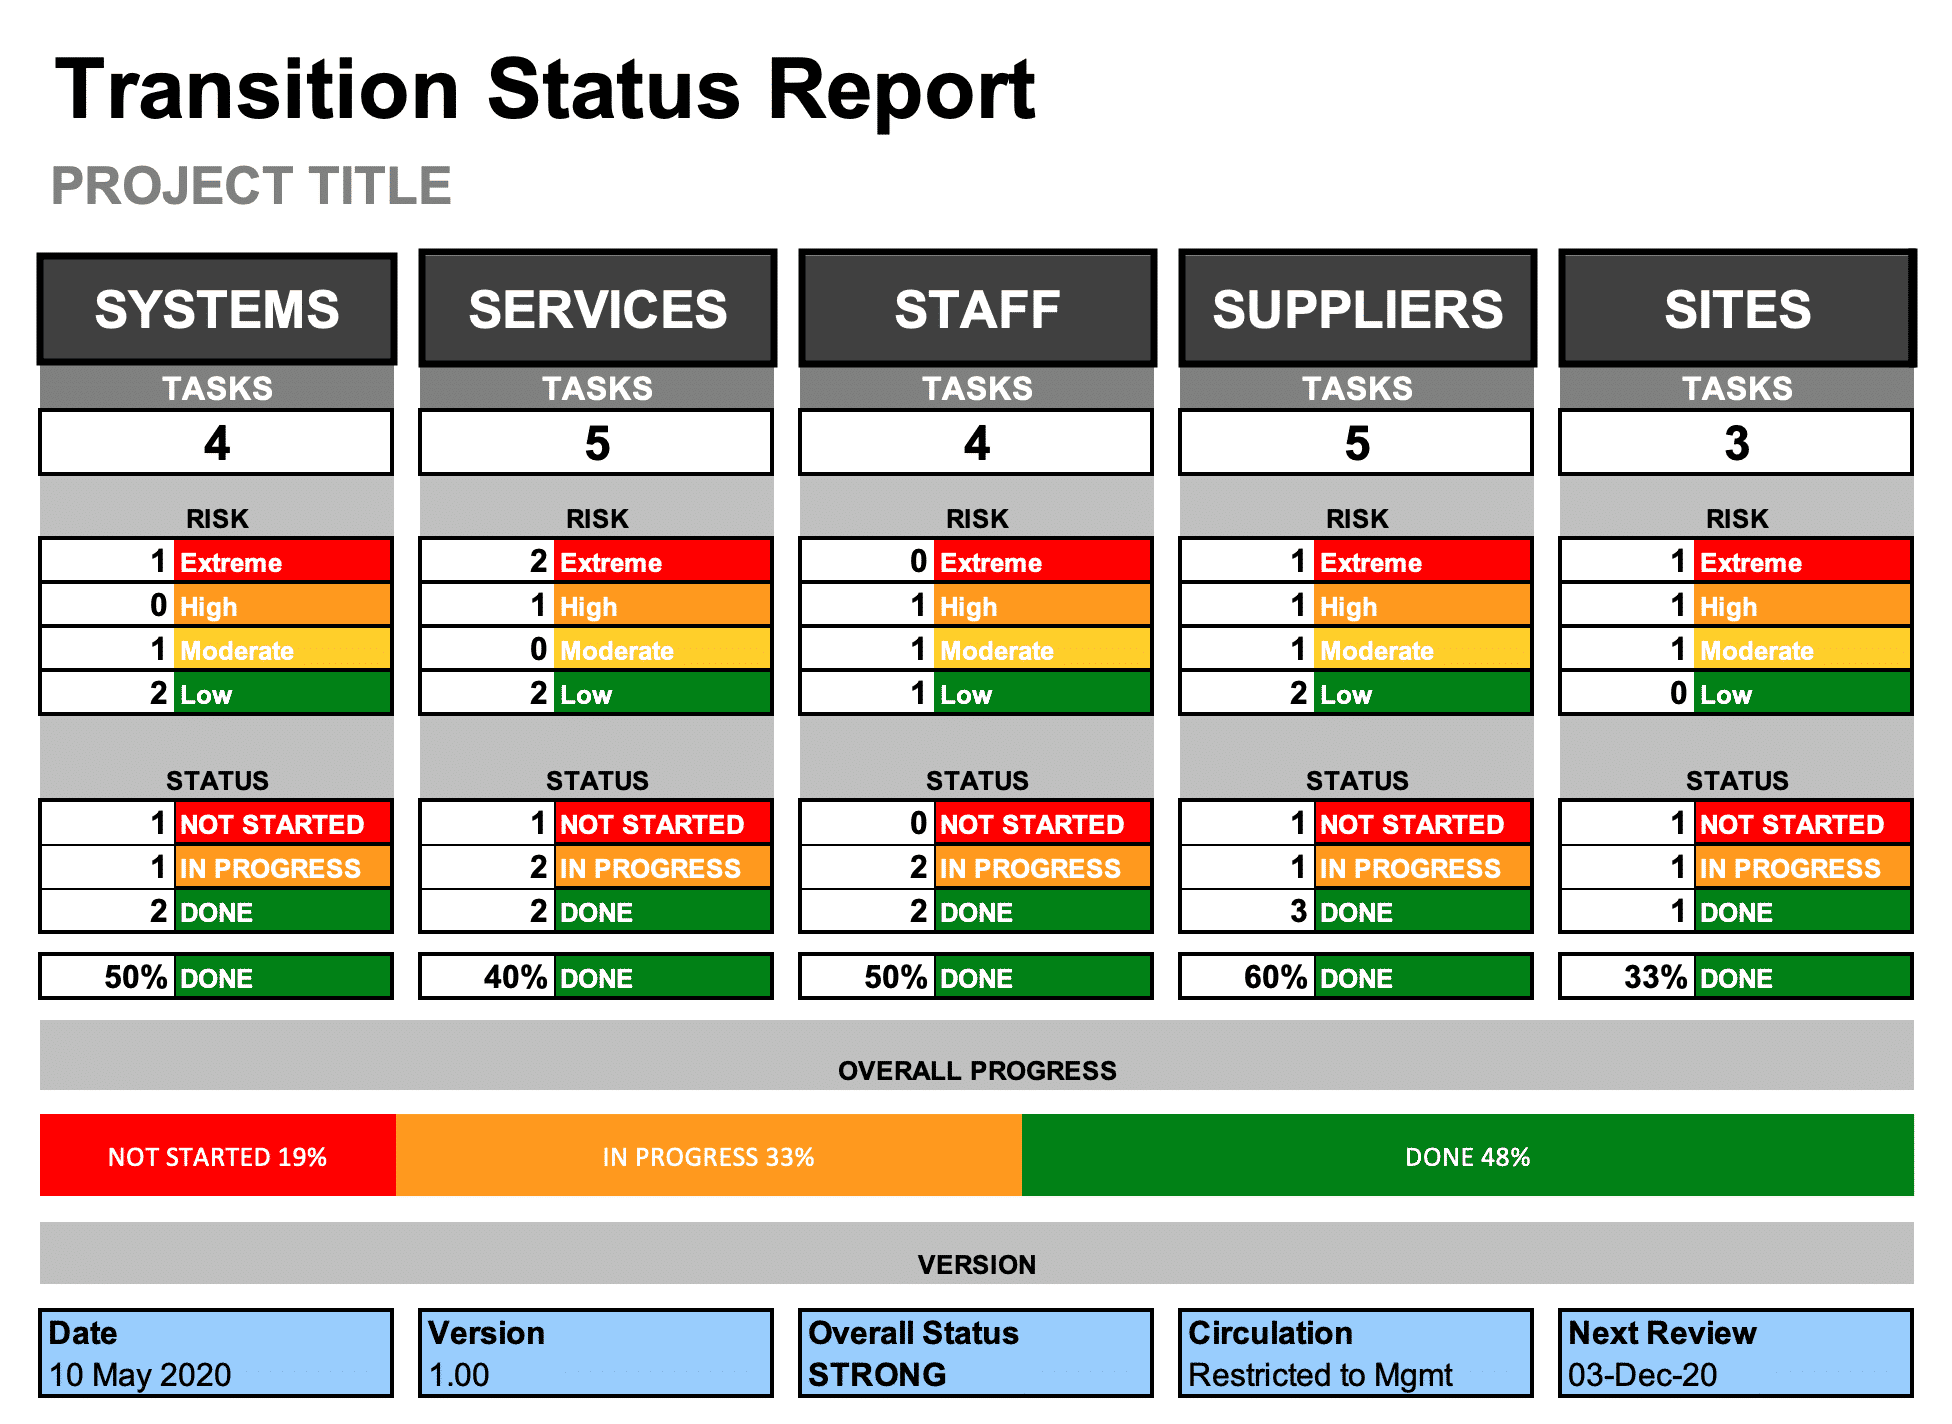 Transition Status Report Template (Excel)